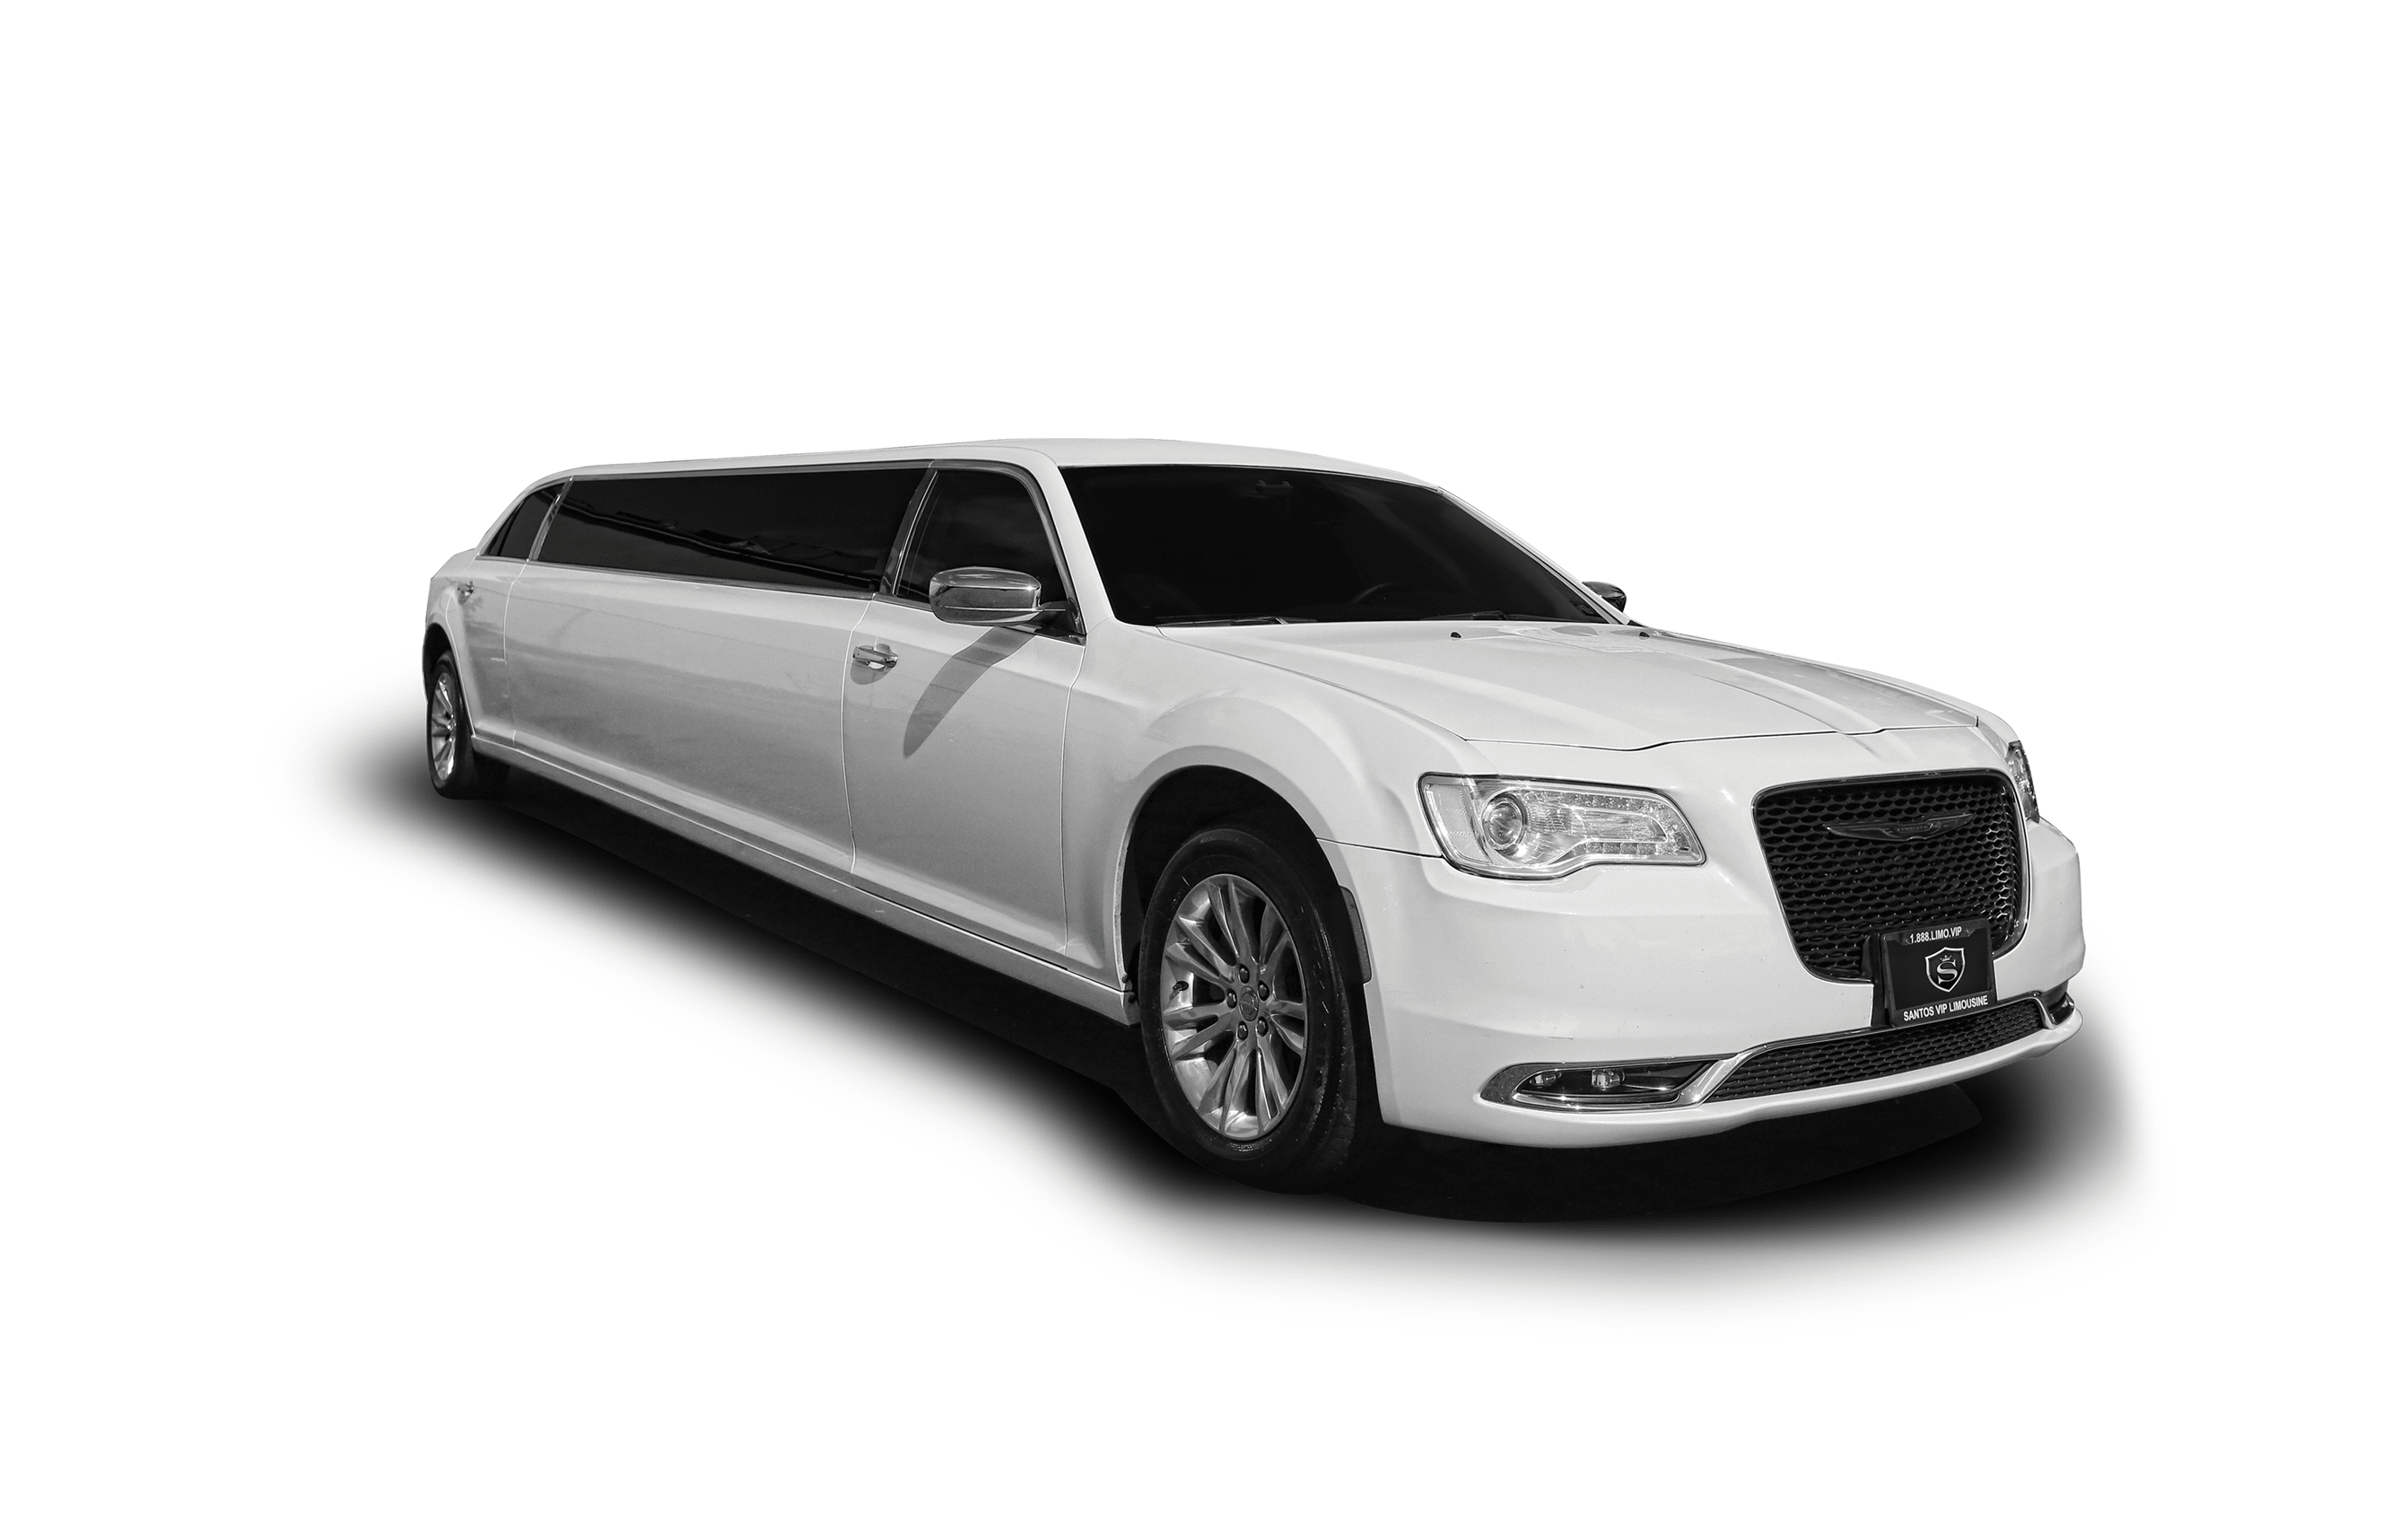 Chrysler 300 stretch limo - Casino Limo Service - Atlantic City, CT & PA